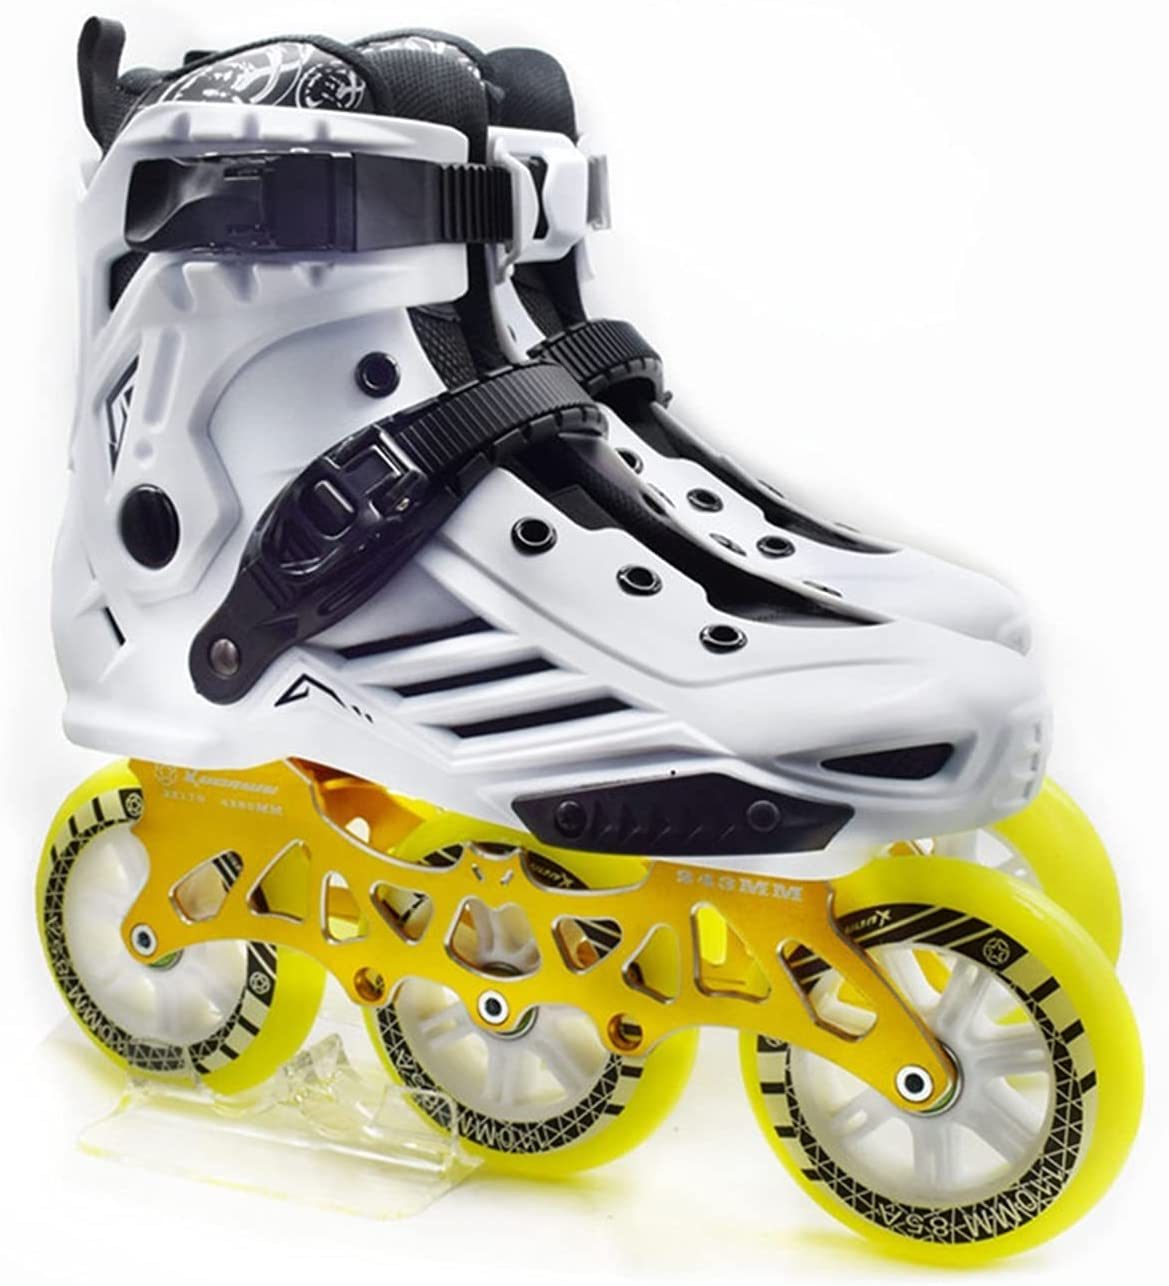 Limited price sale Yyoutop Roller Skates 3 Rounds Adu Max 51% OFF Speed 4 Slalom